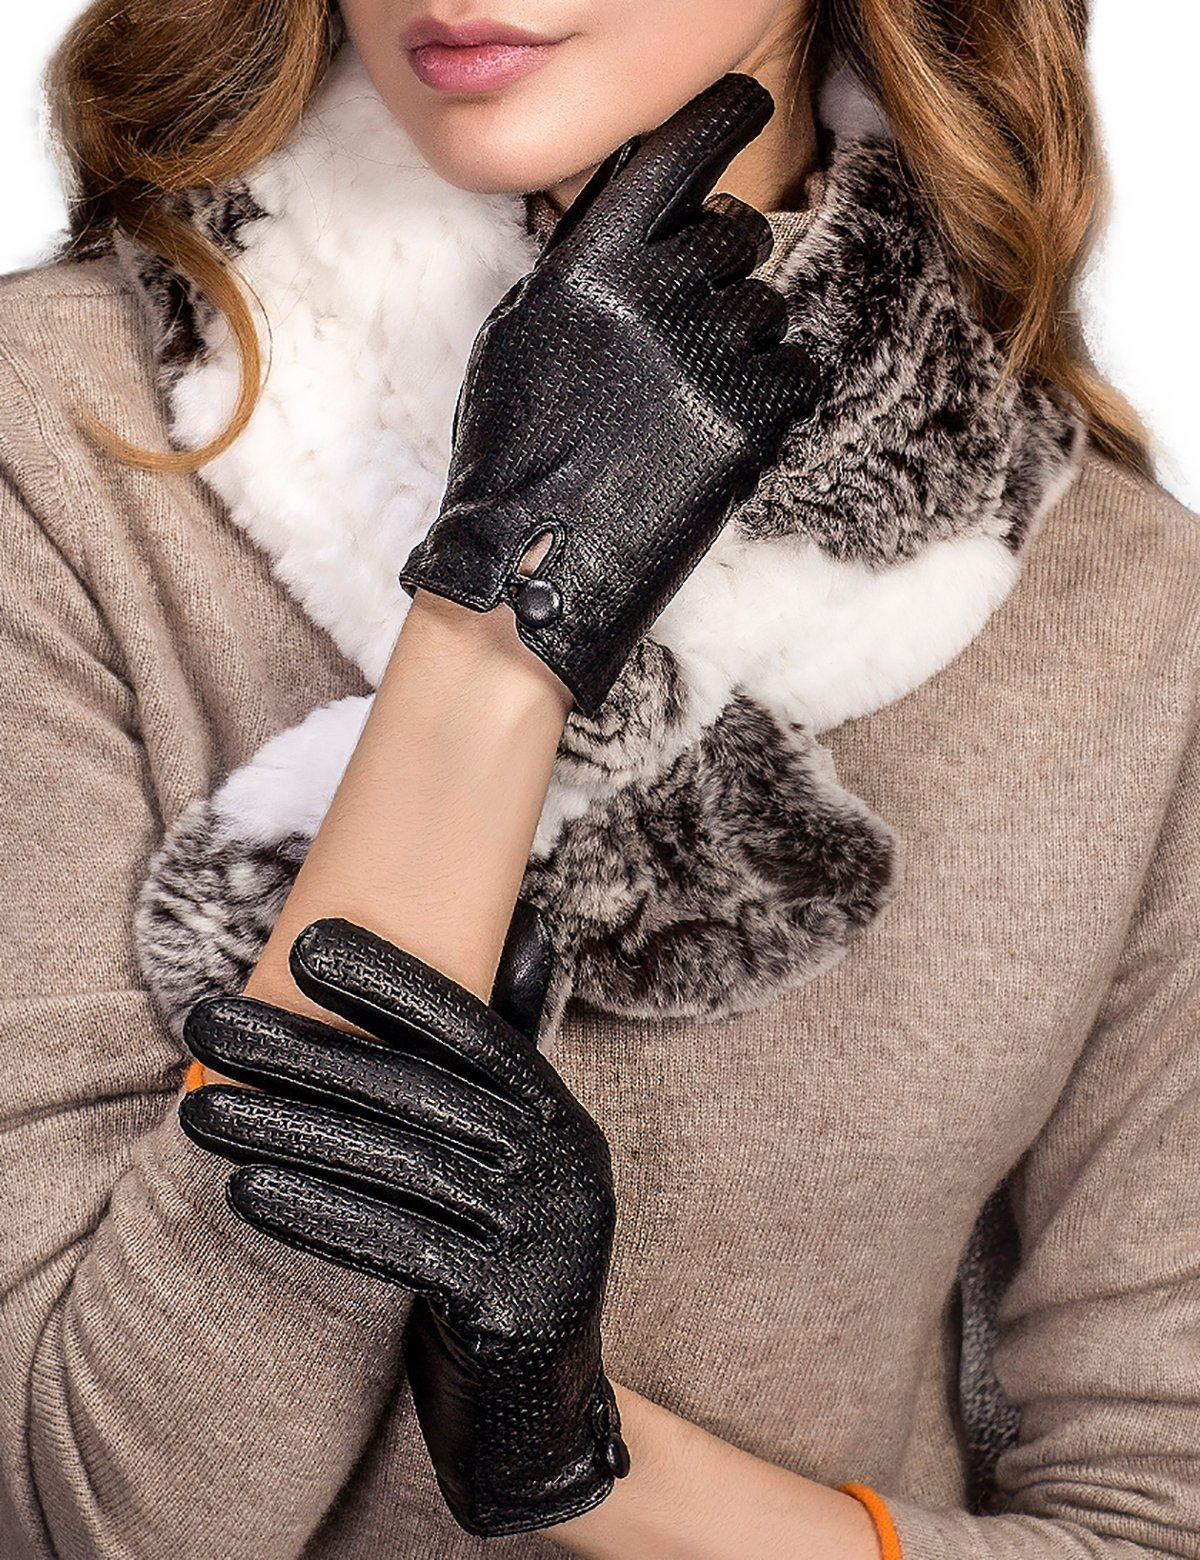 YISEVEN Women's Touchscreen Lambskin Leather Gloves Embossed Short Cuff Latticed Wool Lined Real Luxury Warm Fur Heated Lining for Winter Ladies Accessories Dress Driving Work Xmas Gifts, Black 6.5''/S